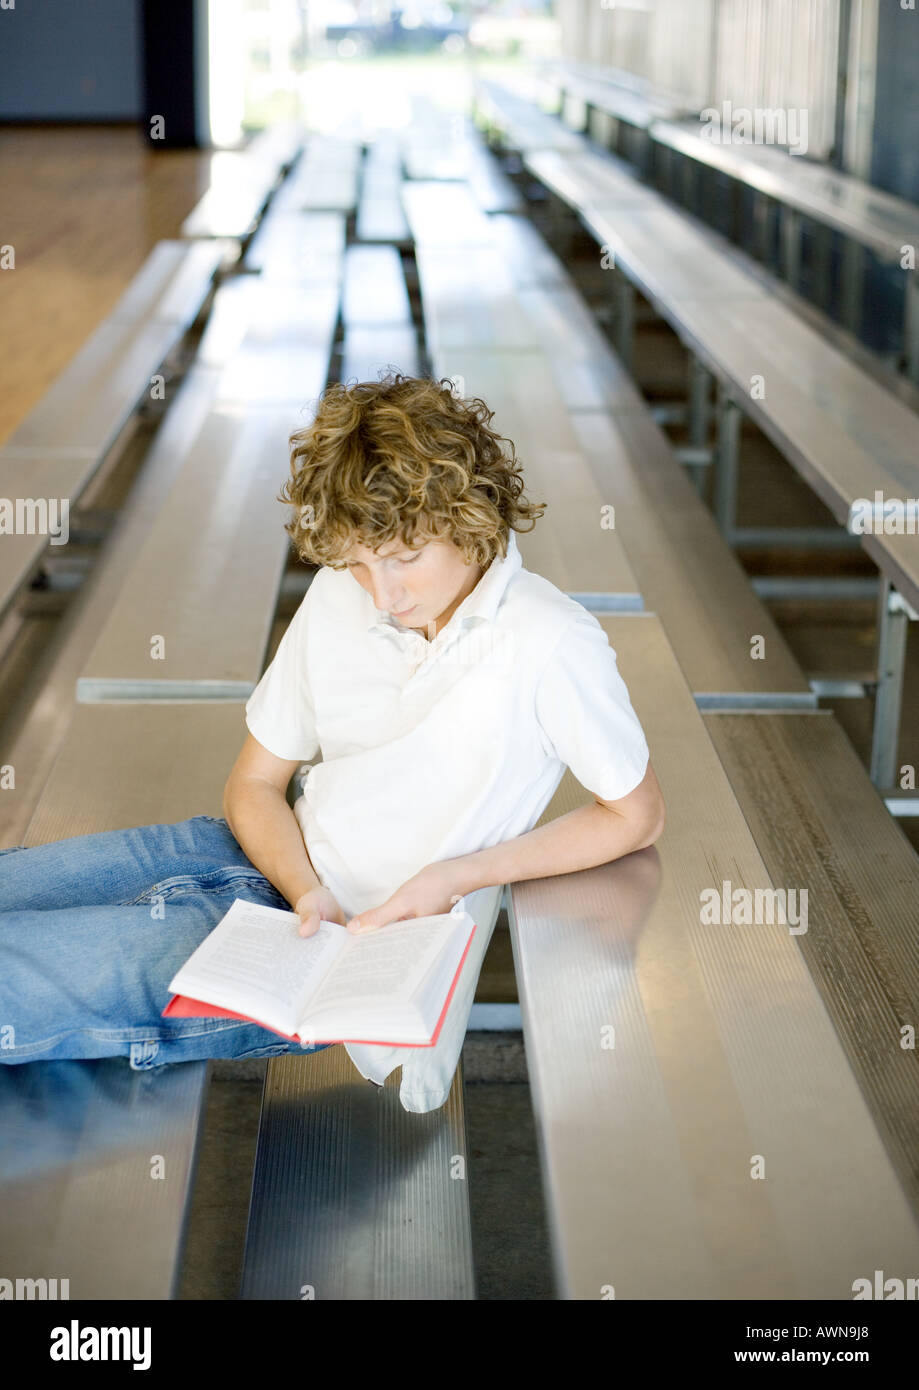 Teen boy reading book on bleachers - Stock Image